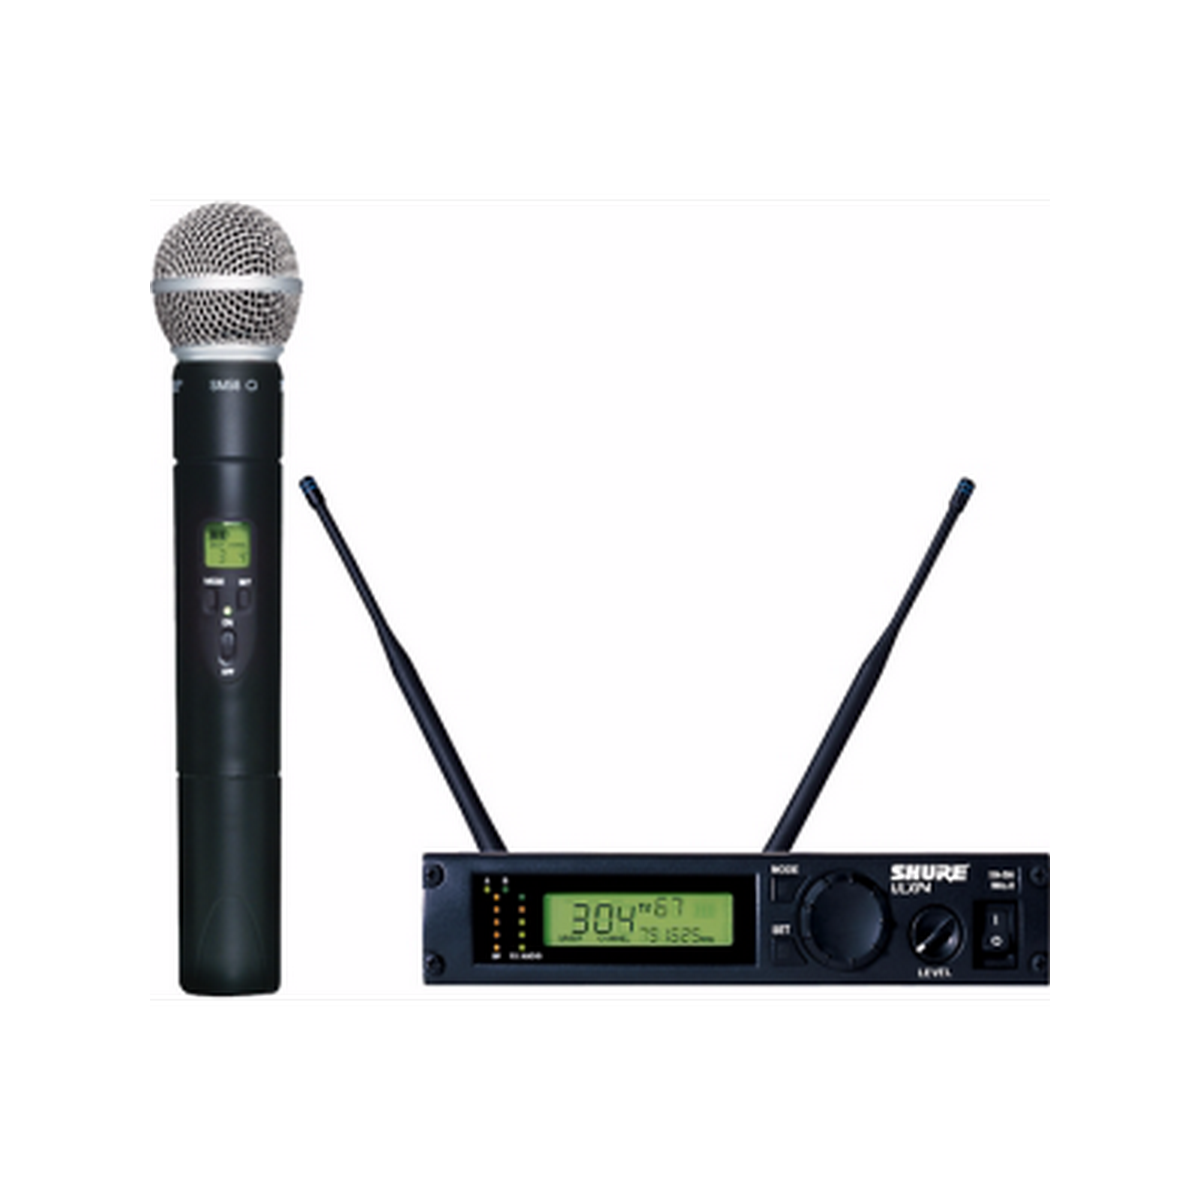 Shure ULXP24/58 Wireless Handheld Microphone System with ULXP4 Receiver & ULX2/SM58 Transmitter